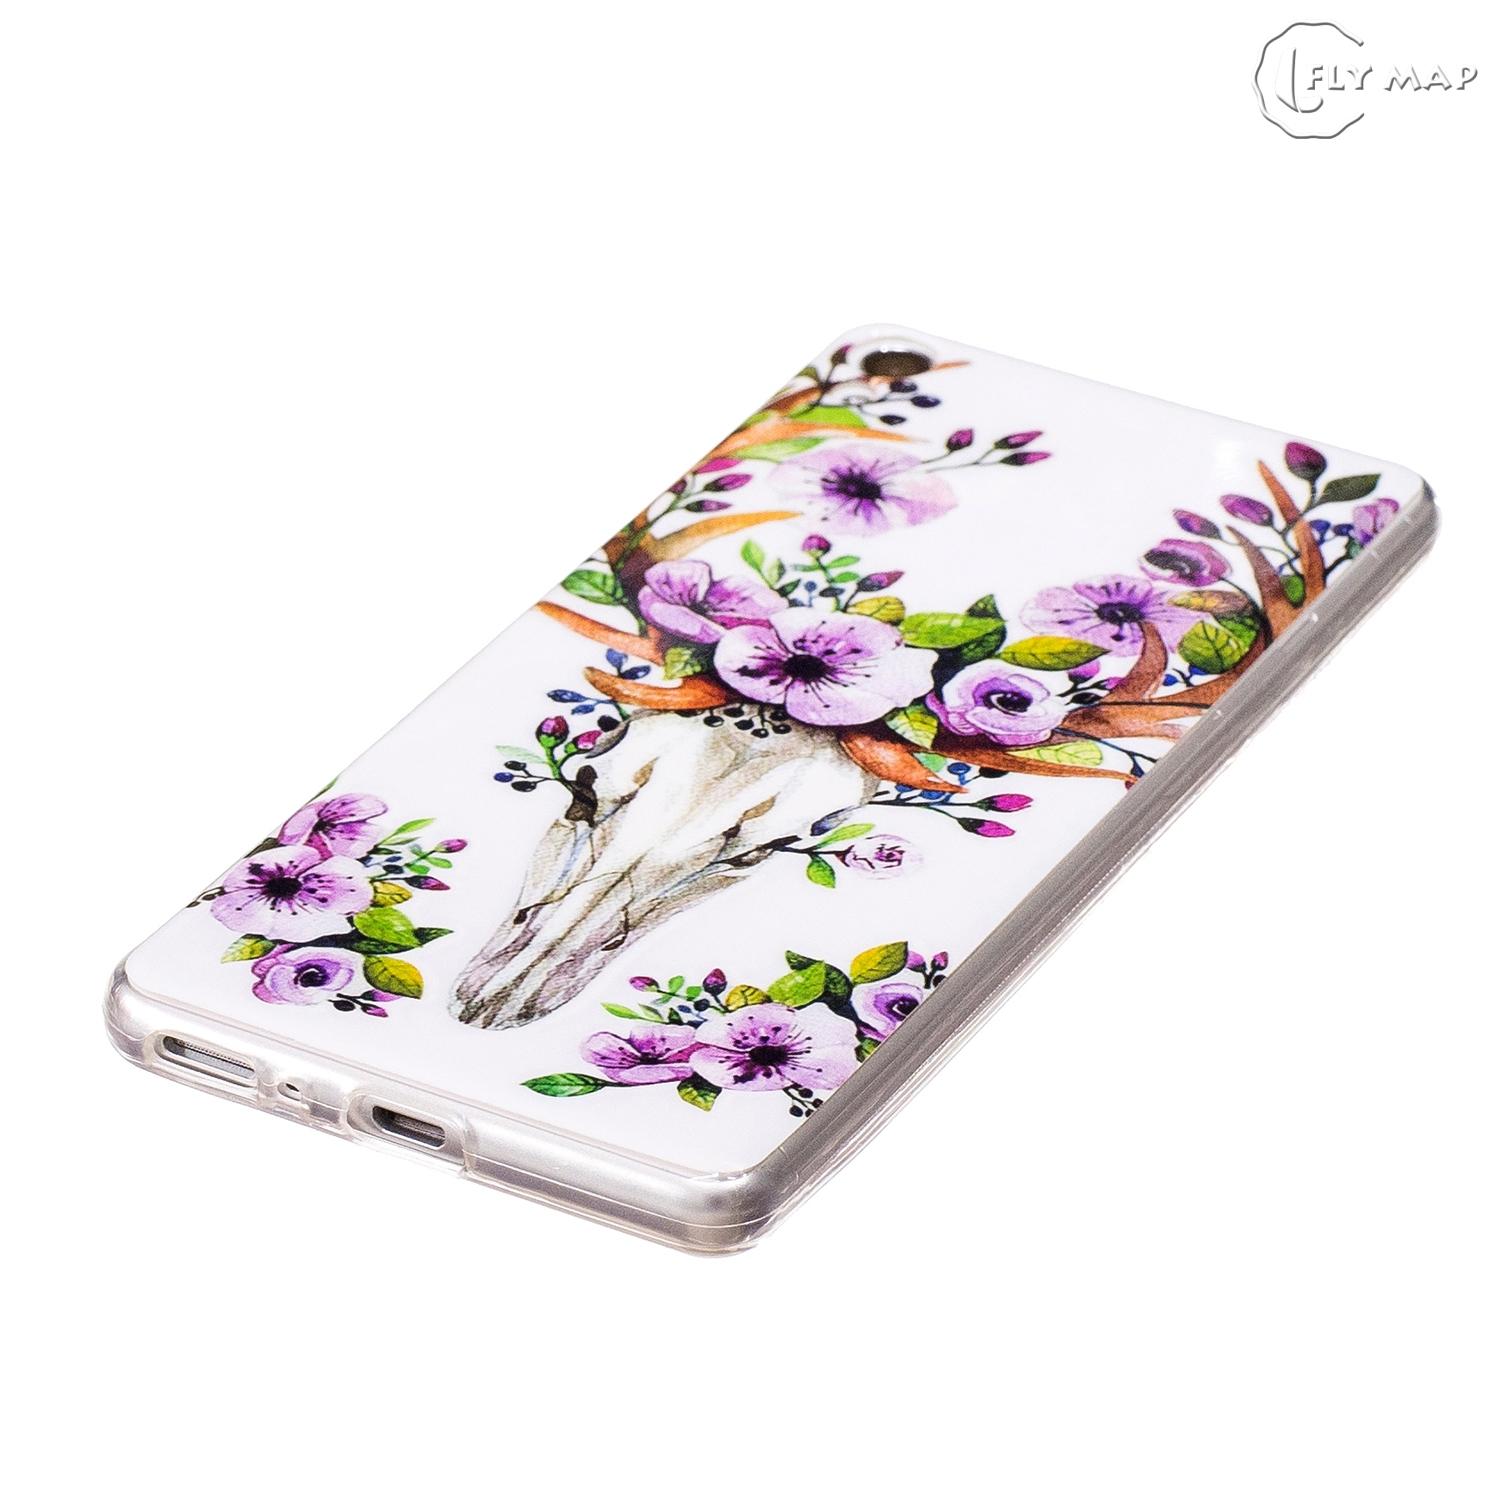 Shell TPU Case for Huawei P10 VTR-L29 VTR-L09 VTR-AL00 Soft Silicone Floral Protect Cover for Huawei P 10 VTR L29 L09 Case